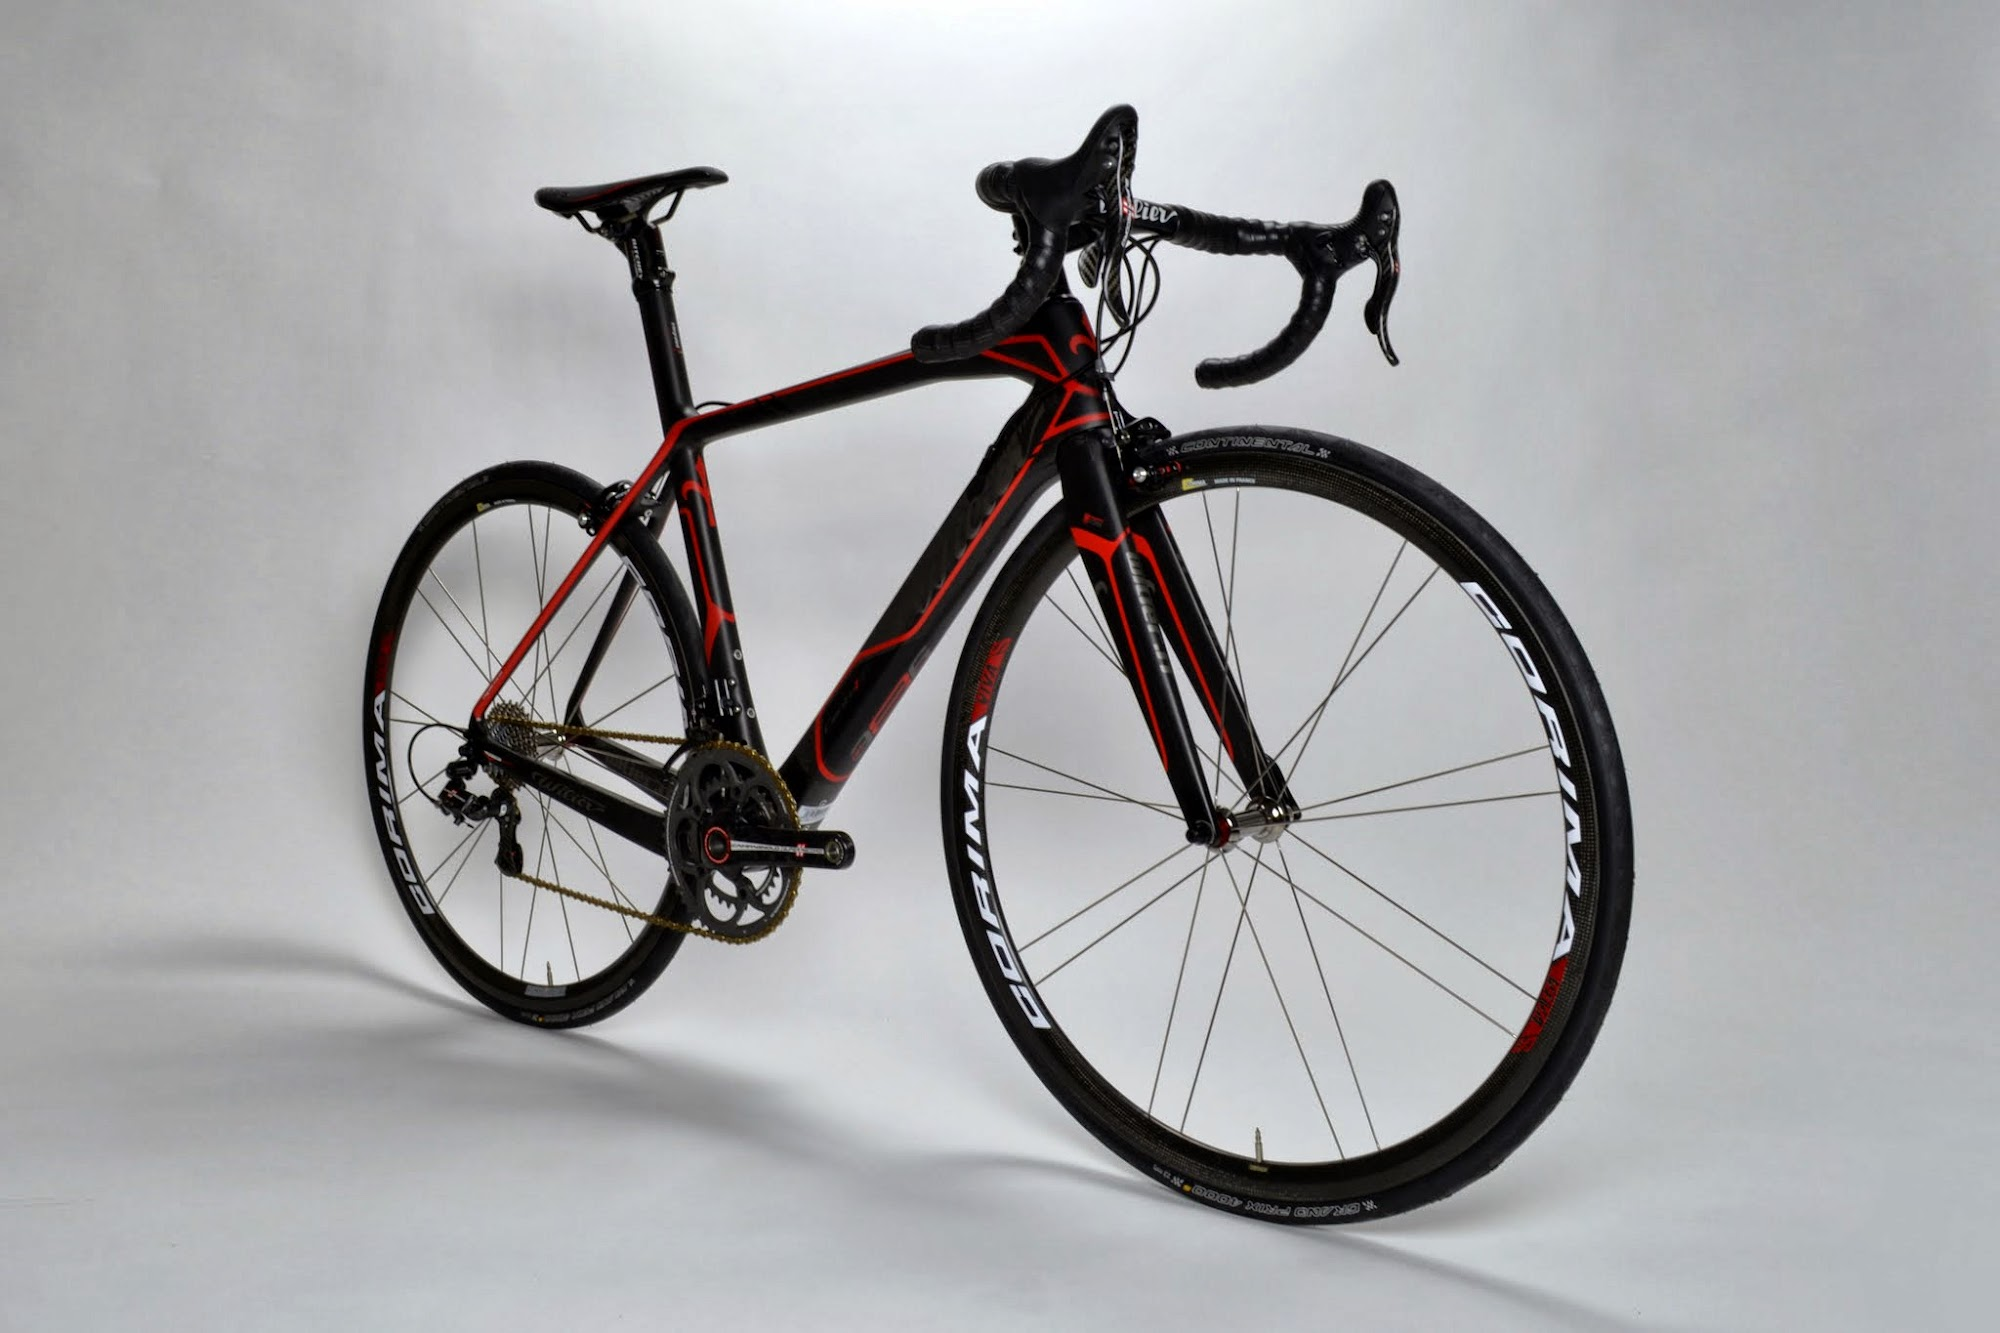 www.twohubs.com: Wilier Triestina Cento1 SR Campagnolo Super Record Complete Bike at twohubs.com